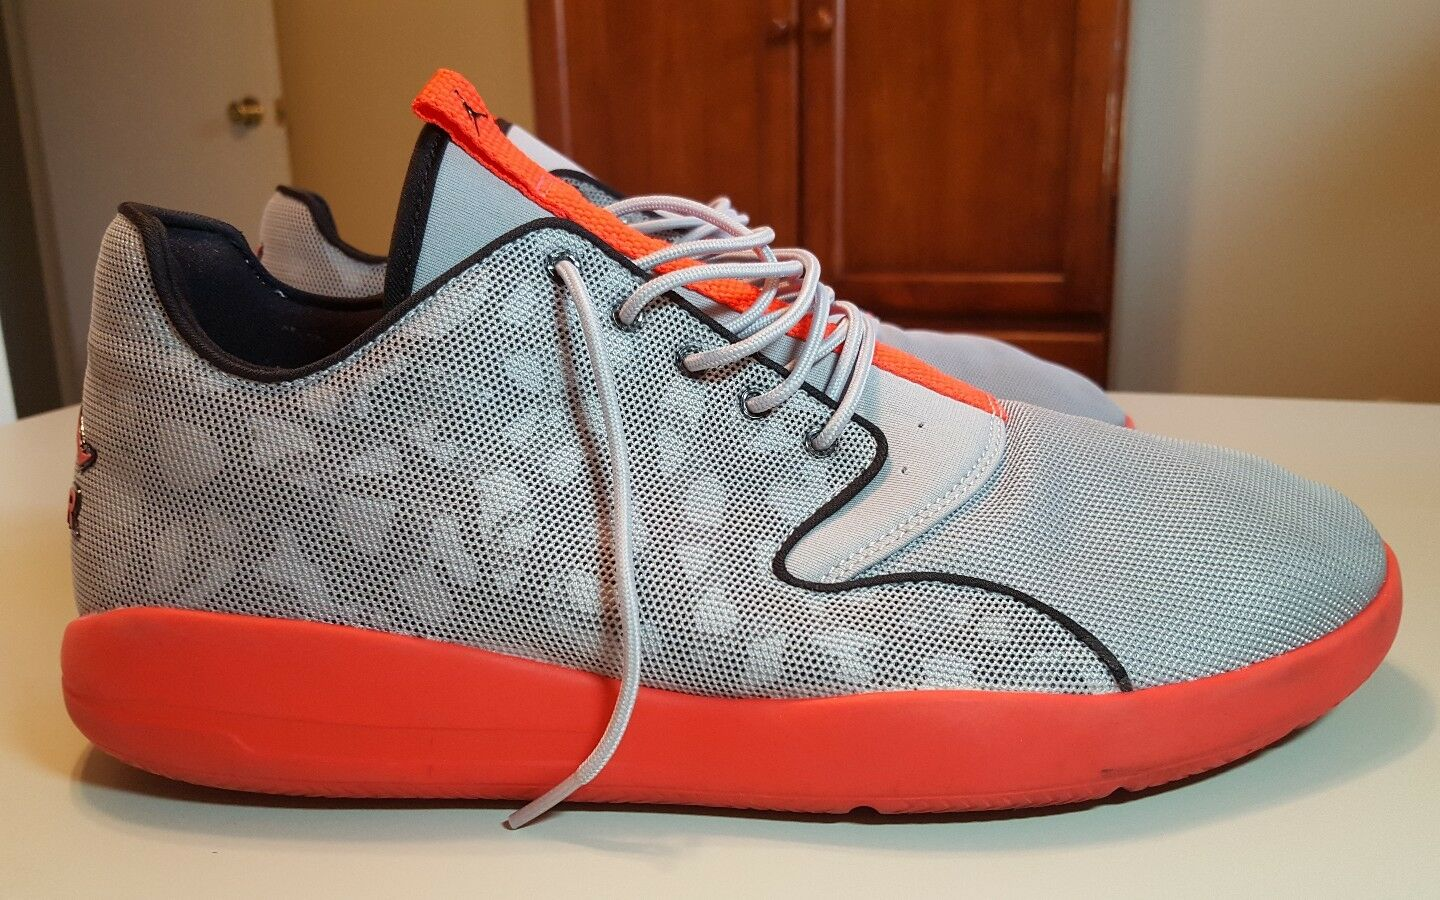 Nike Air Jordan Eclipse, 724010-006, Men's Running Shoes, Wolf Gray/Red, Comfortable